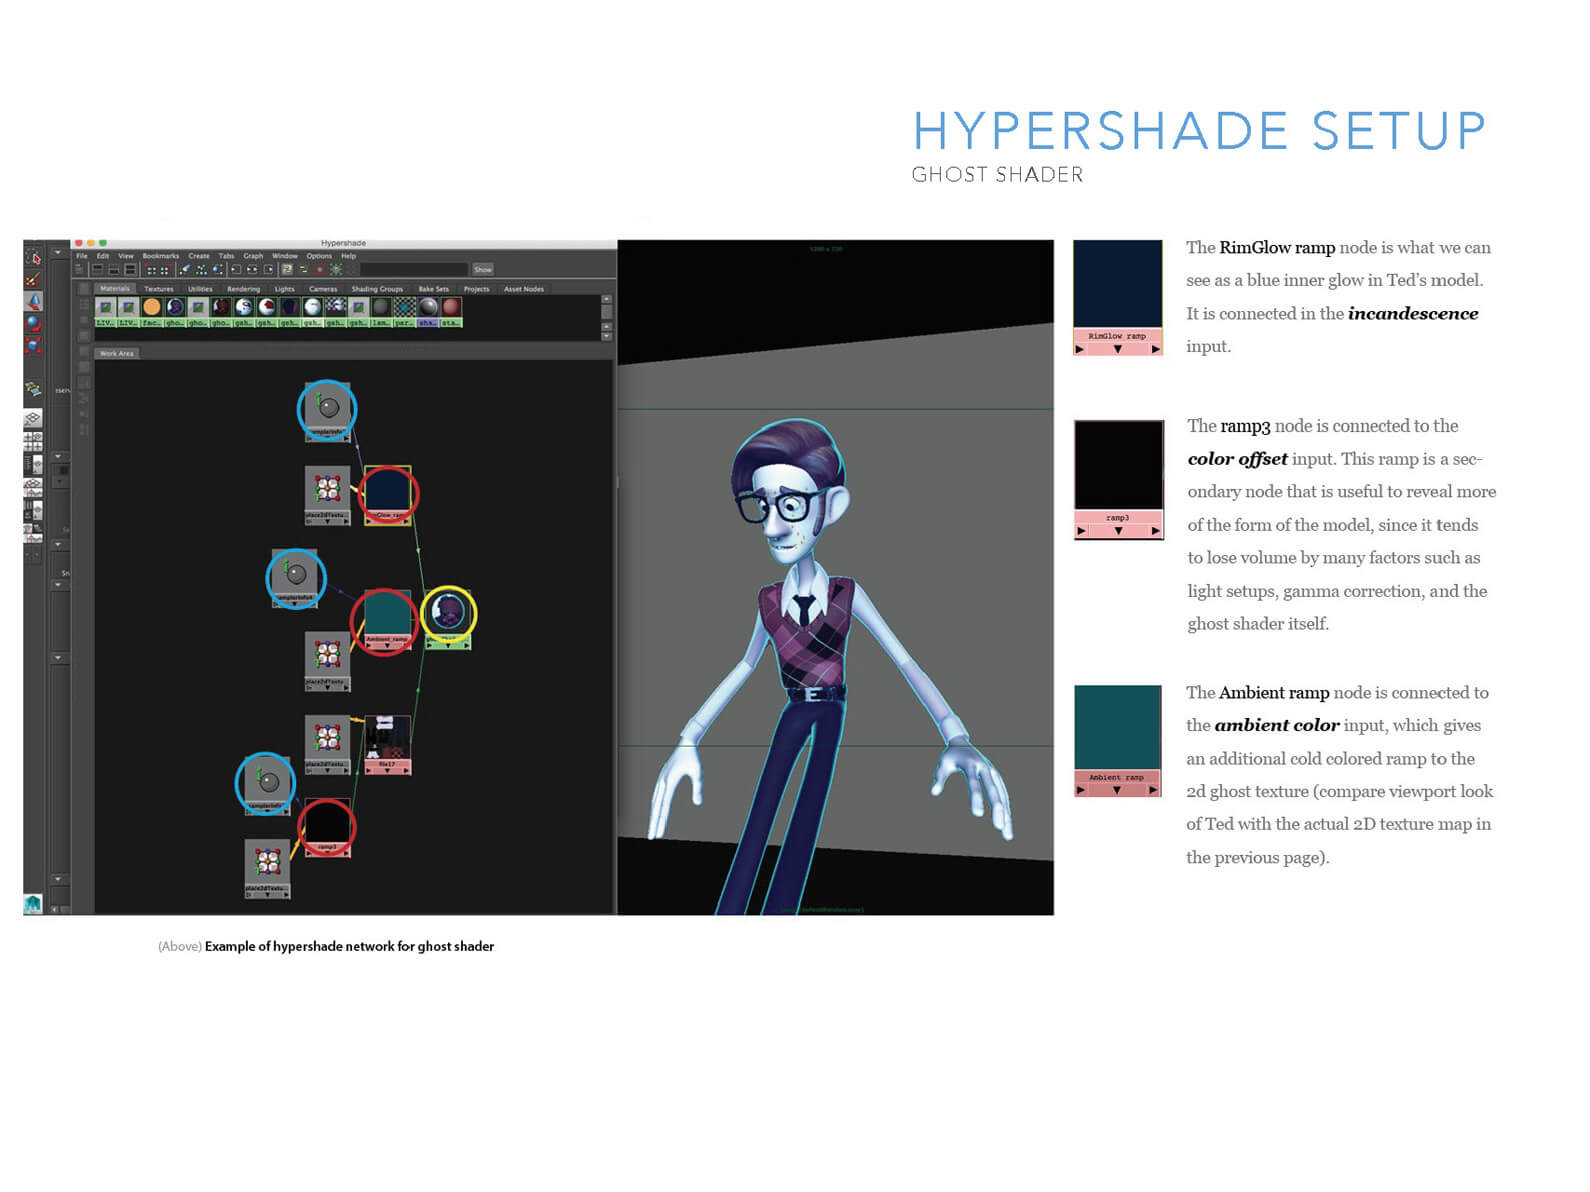 Technical description of the hypershade setup process for the character of Ted from Orientation Center for the Unseen